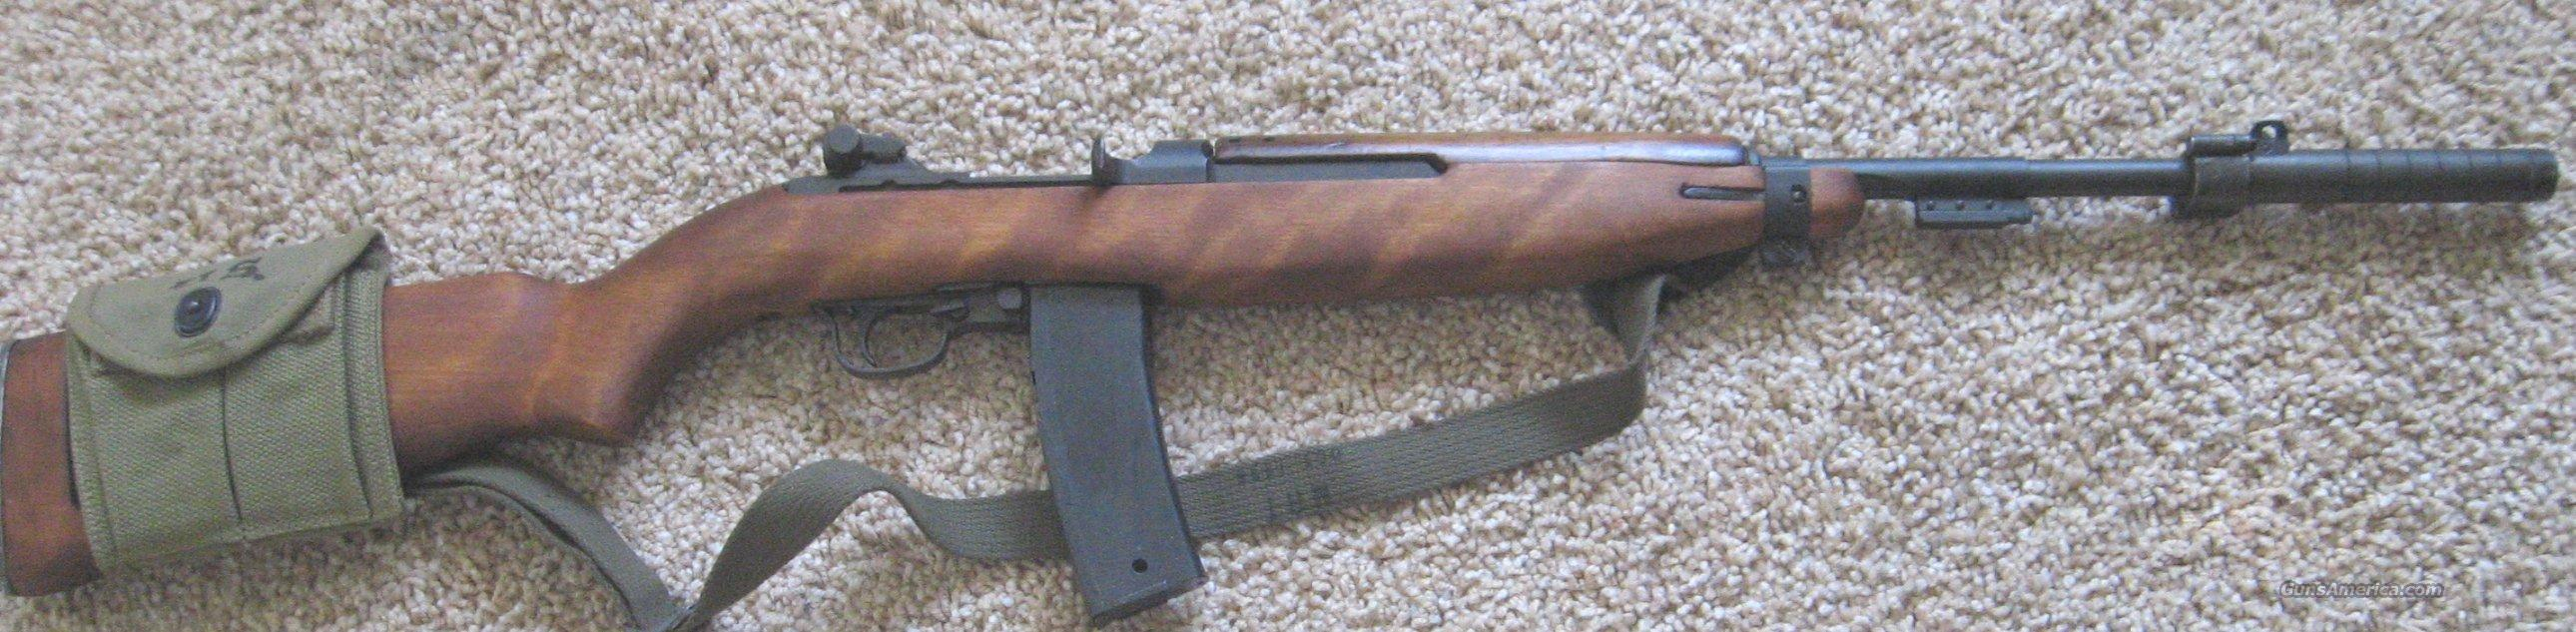 Grenade Launcher, Korean War US M1 Carbine  Guns > Rifles > Military Misc. Rifles US > M1 Carbine